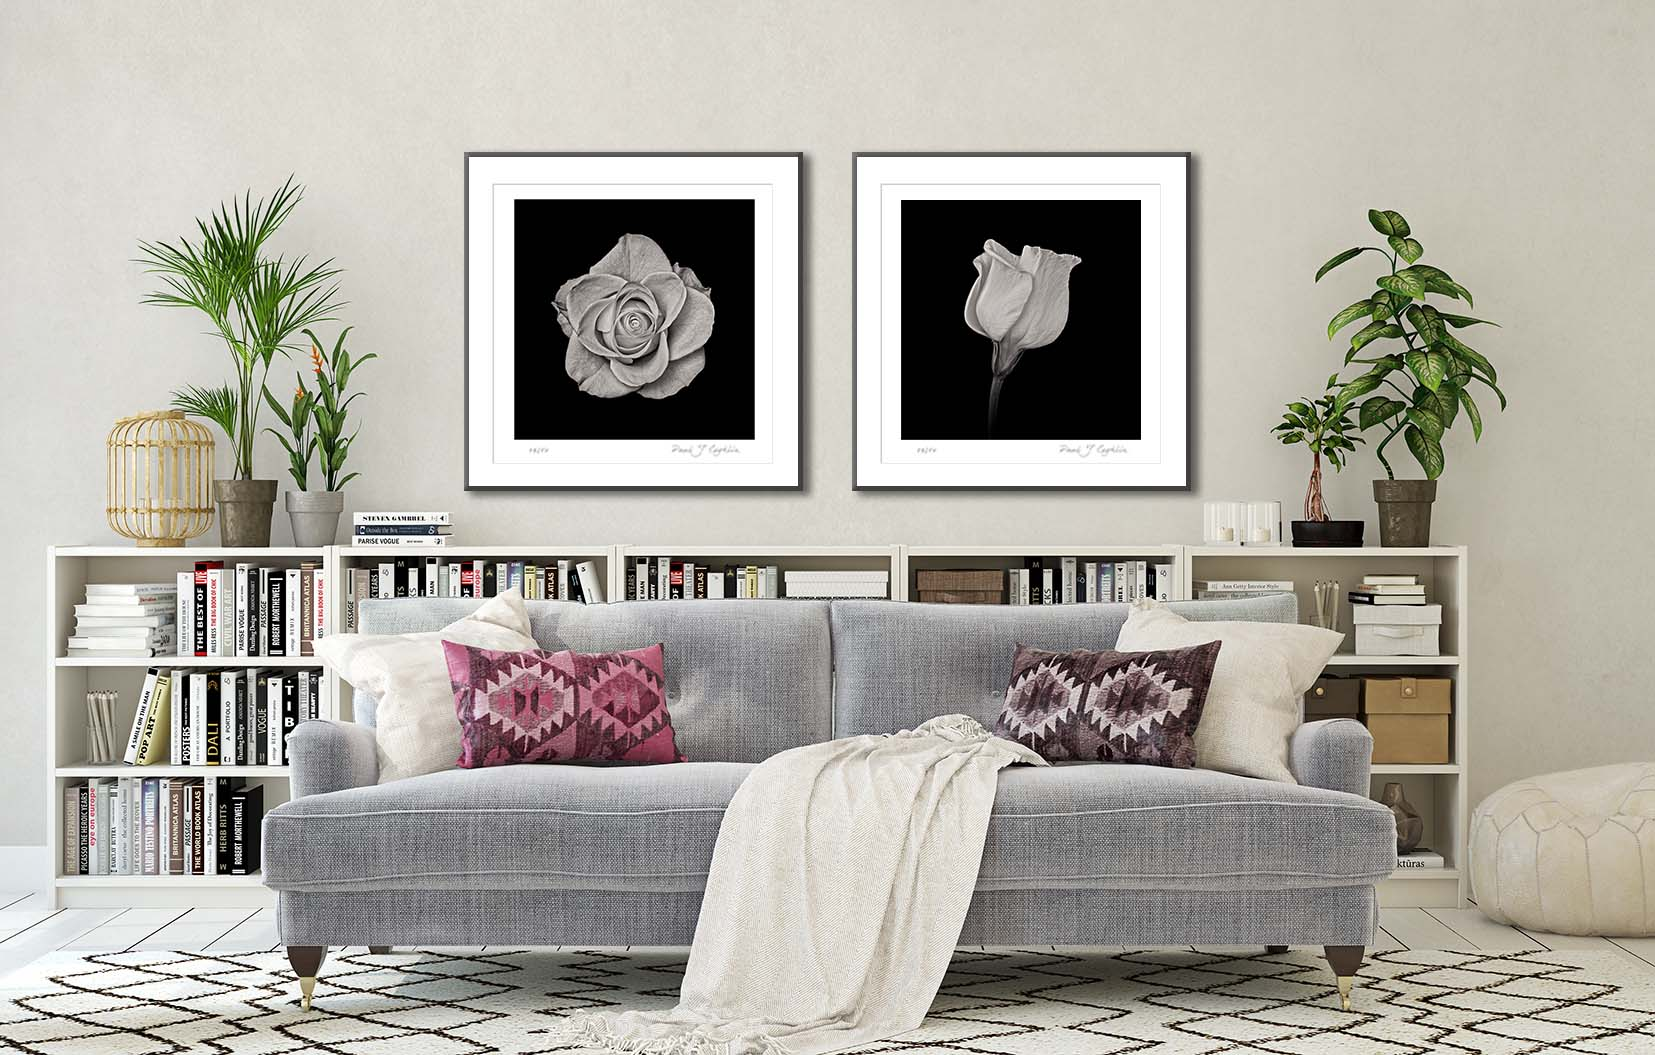 Two black and white floral prints of a rose and a campanula, framed and on the wall. Fine art floral photography by Paul Coghlin FBIPP.